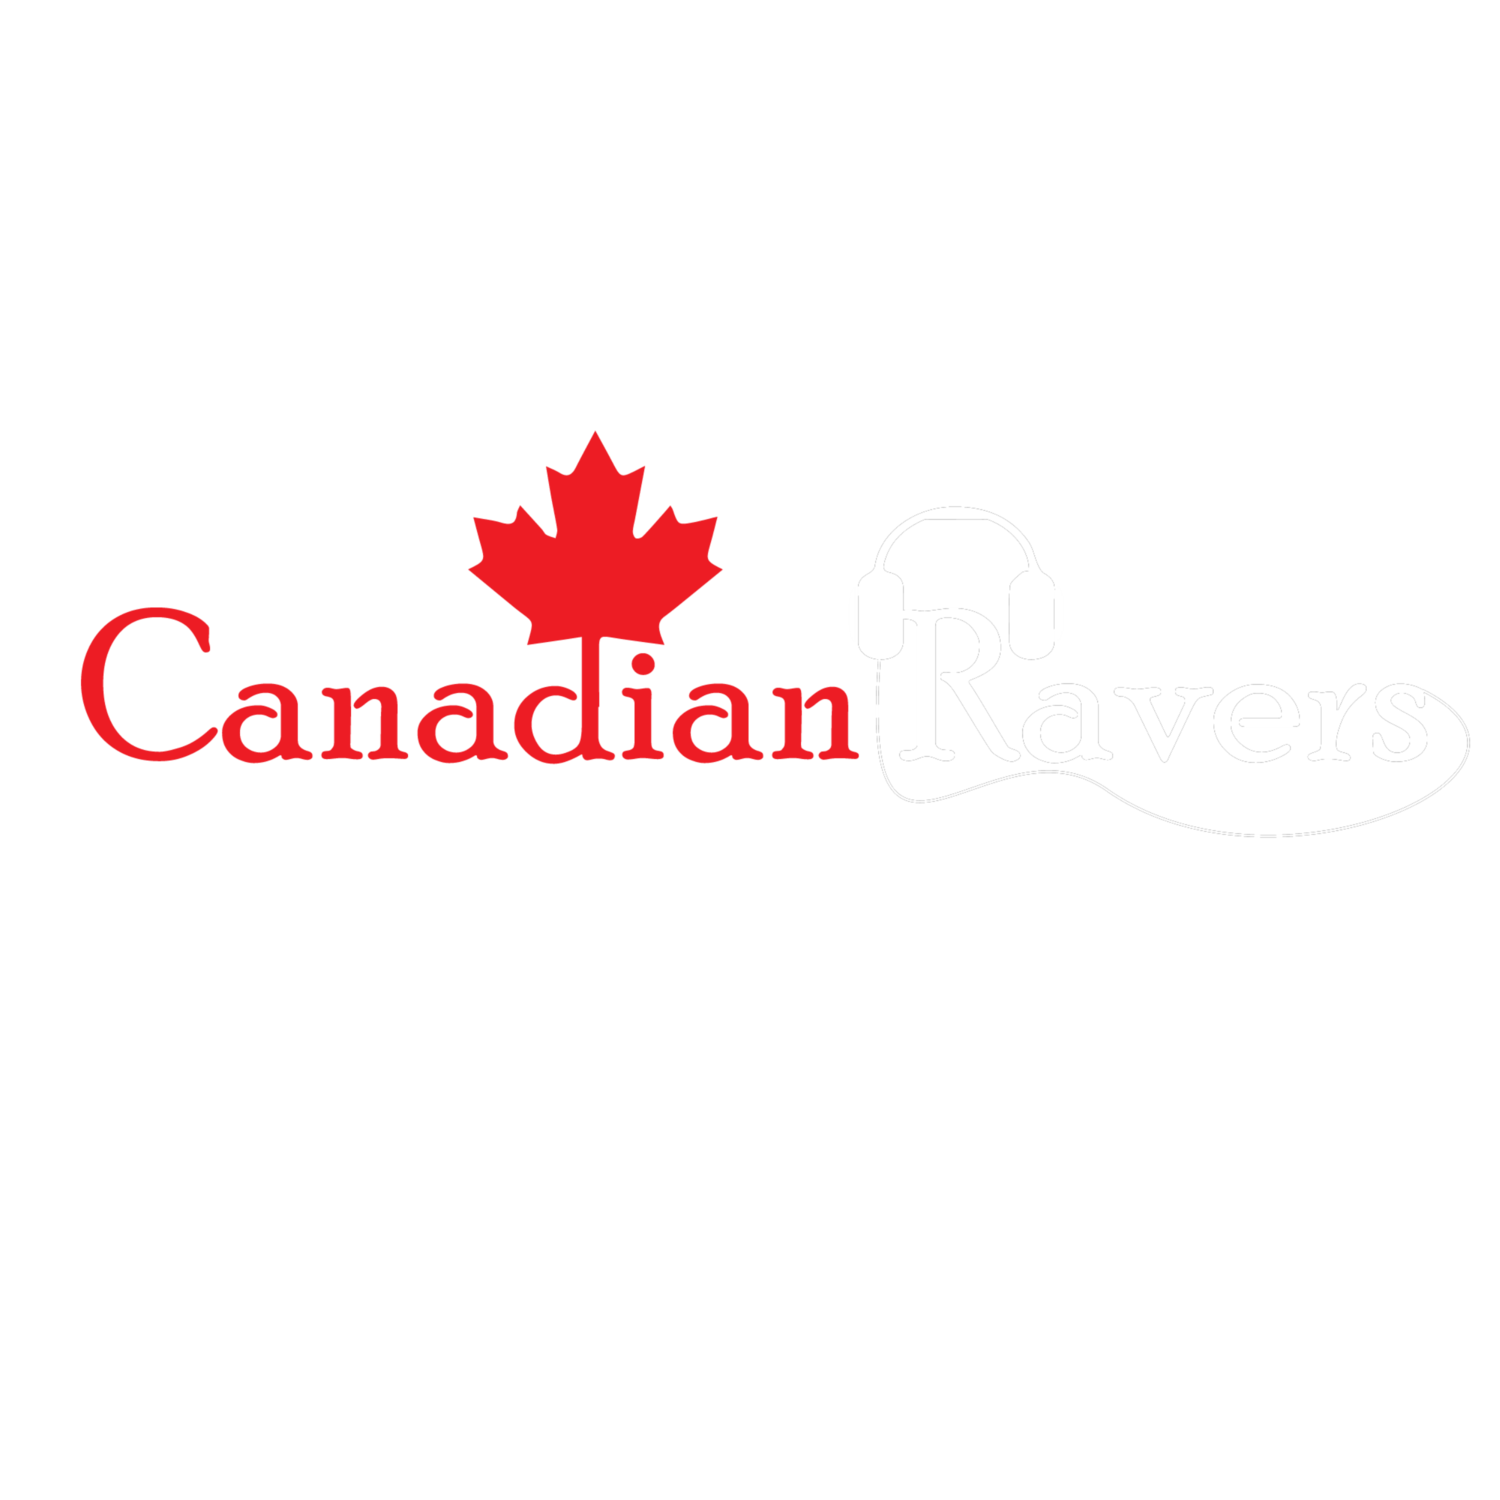 New events canadianravers canadianravers malvernweather Image collections